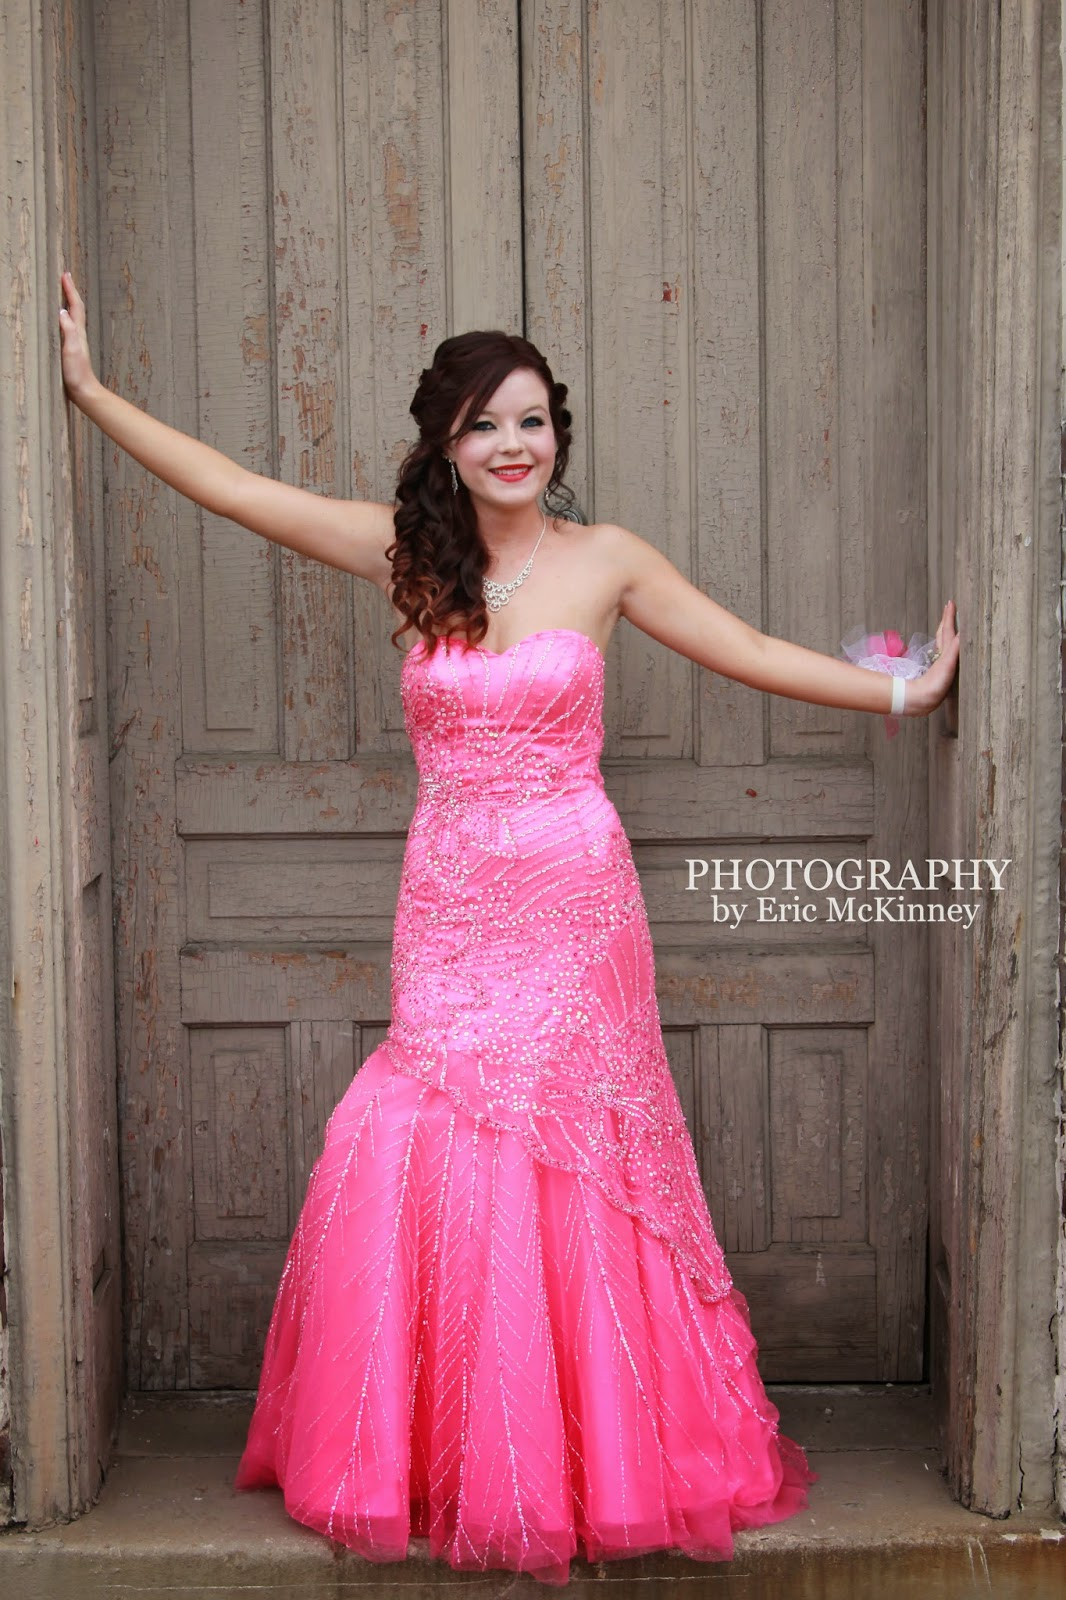 6:12 Photography by Eric McKinney: 2014 Prom Portraits - Morristown ...